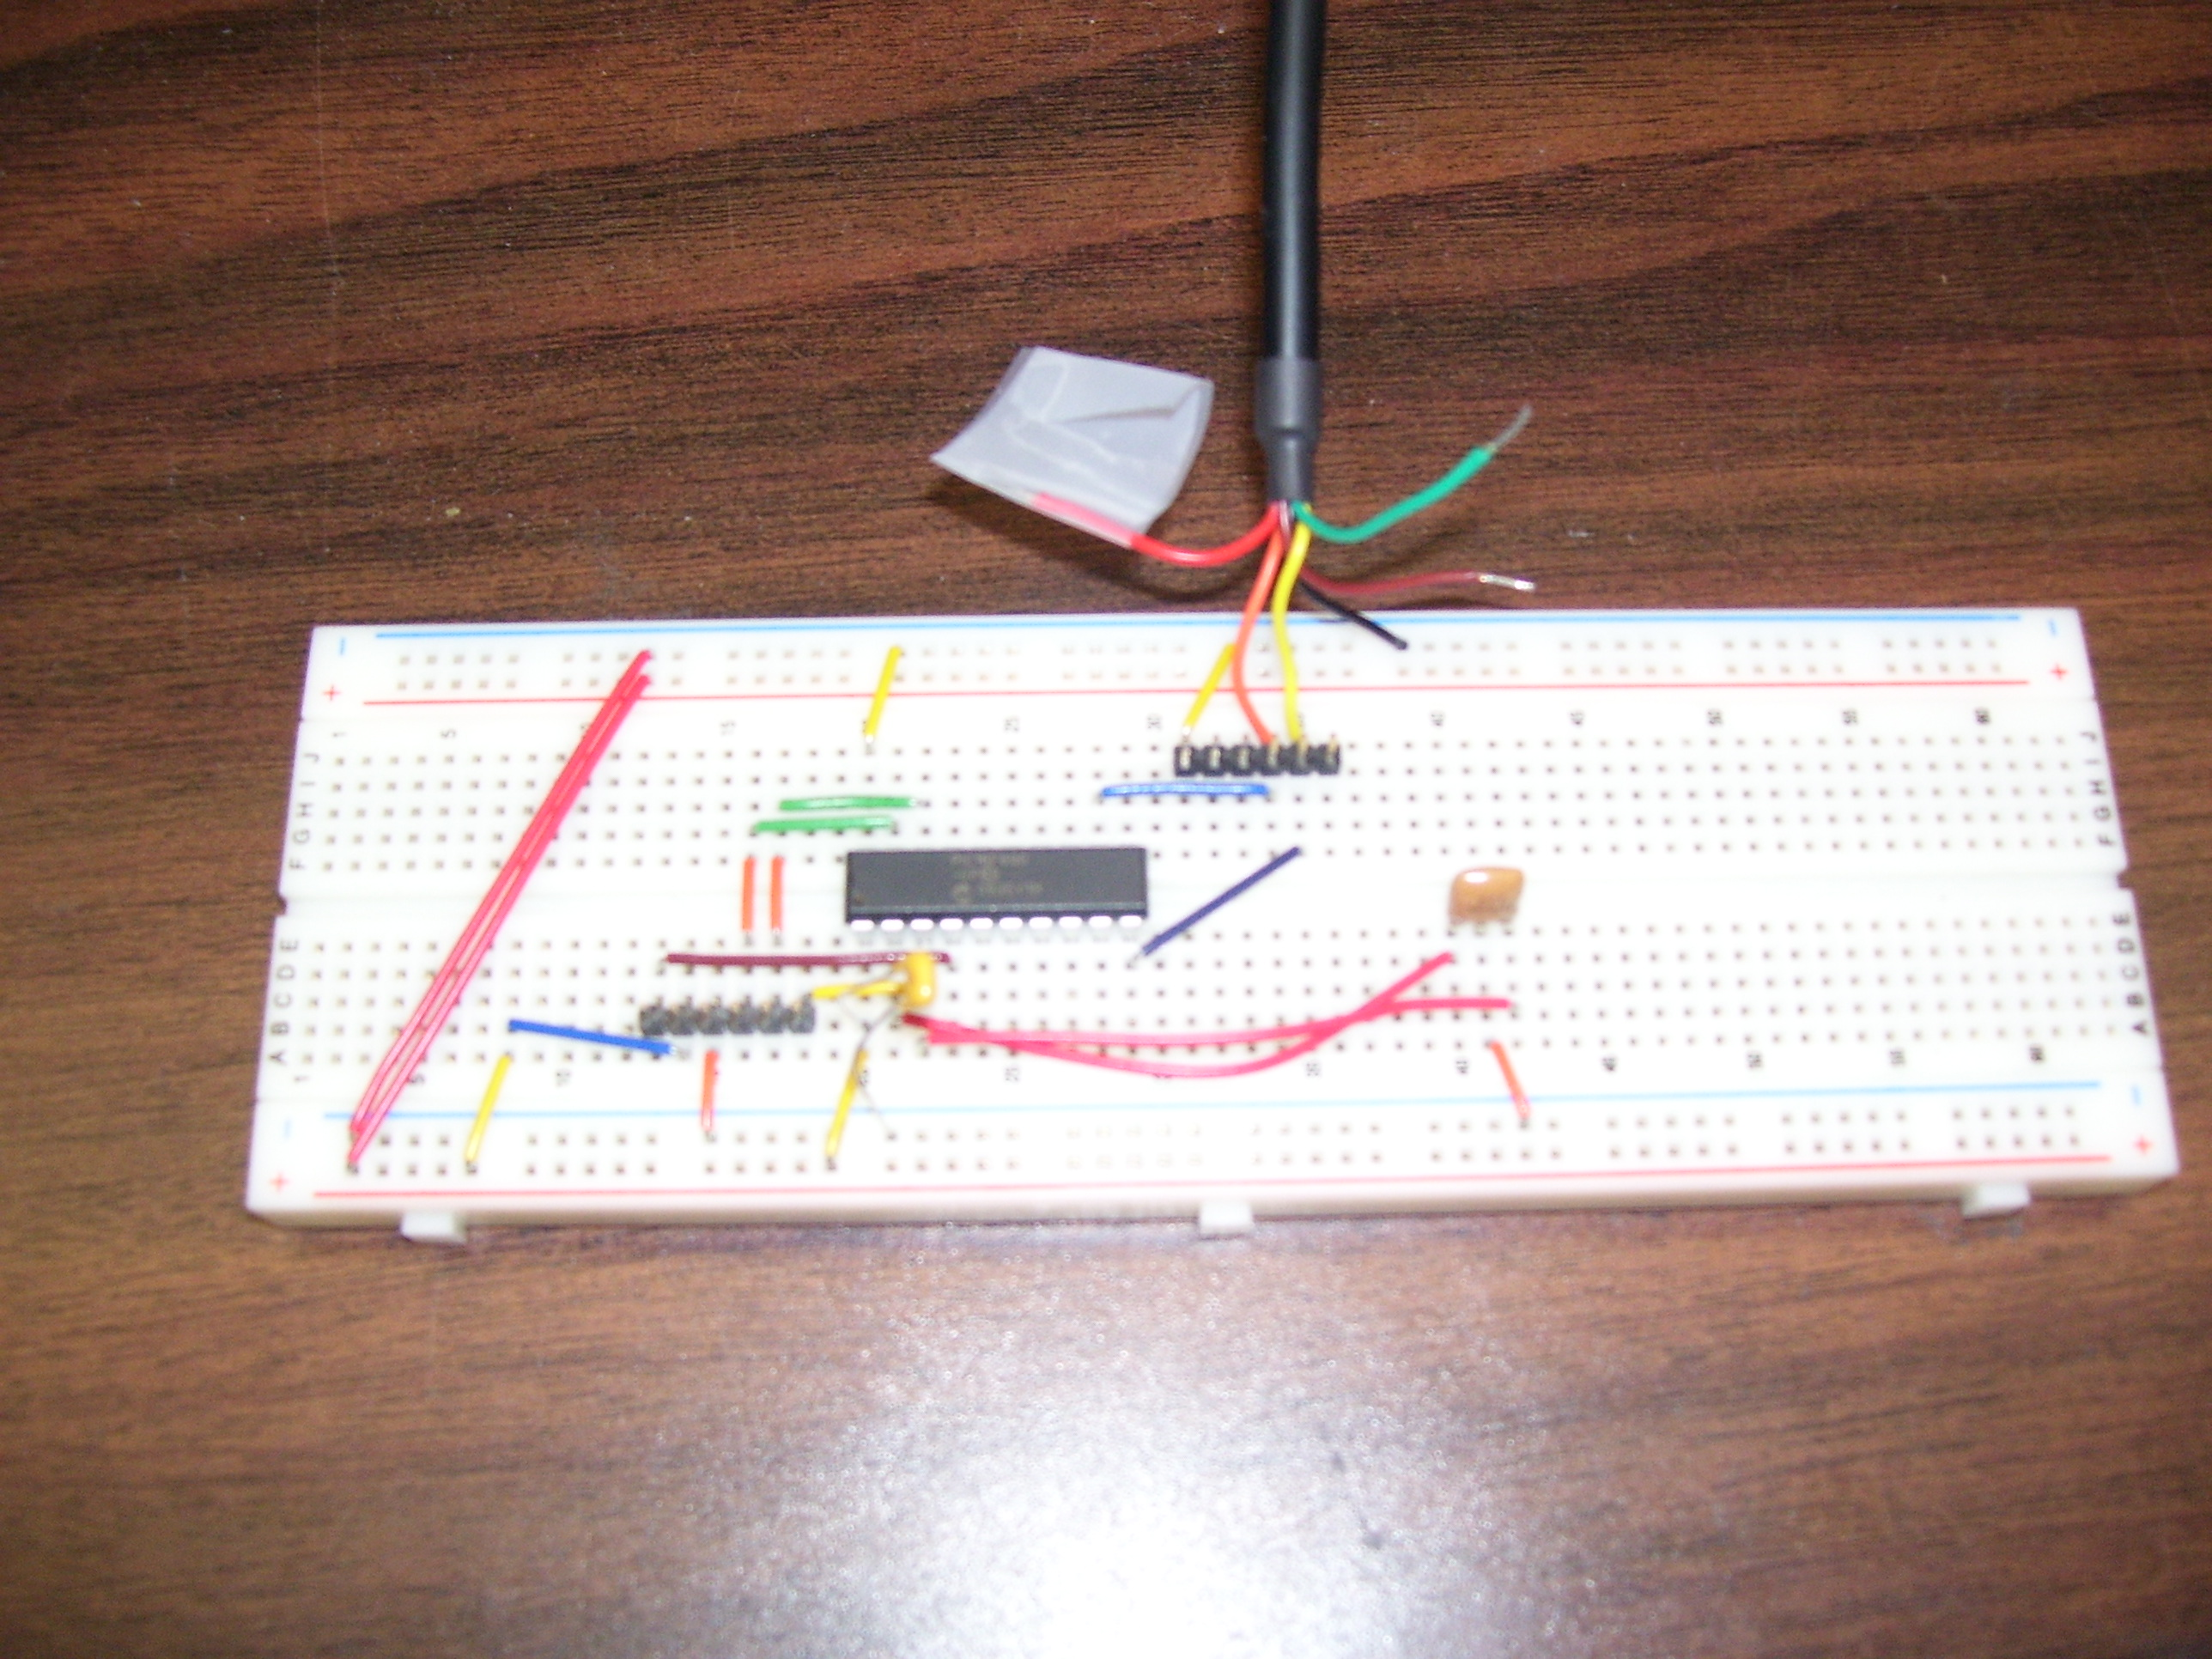 Sample Programs For The Pic Microcontroller Serial Usb Circuit Diagram See Protoboard A Picture Of Our Breadboard 20 Mhz Resonator Has Been Connected To Chip In